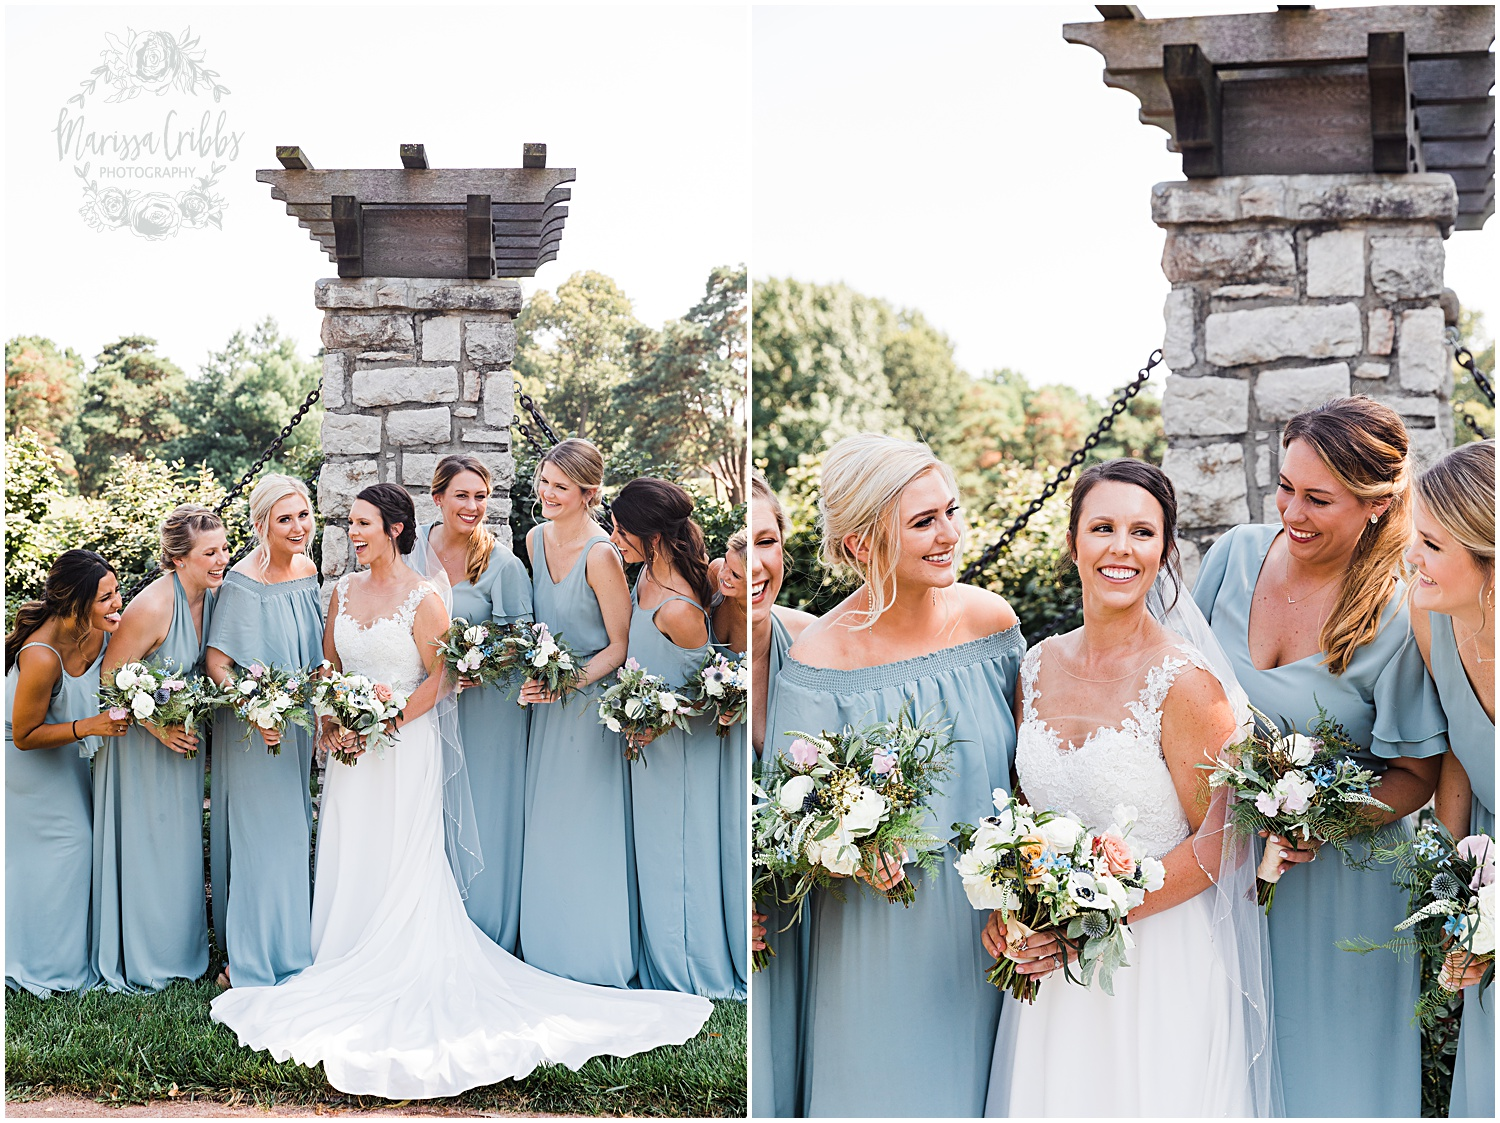 KELLY & MITCH MARRIED BLOG | MARISSA CRIBBS PHOTOGRAPHY | THE EVERLY EVENT SPACE_8851.jpg